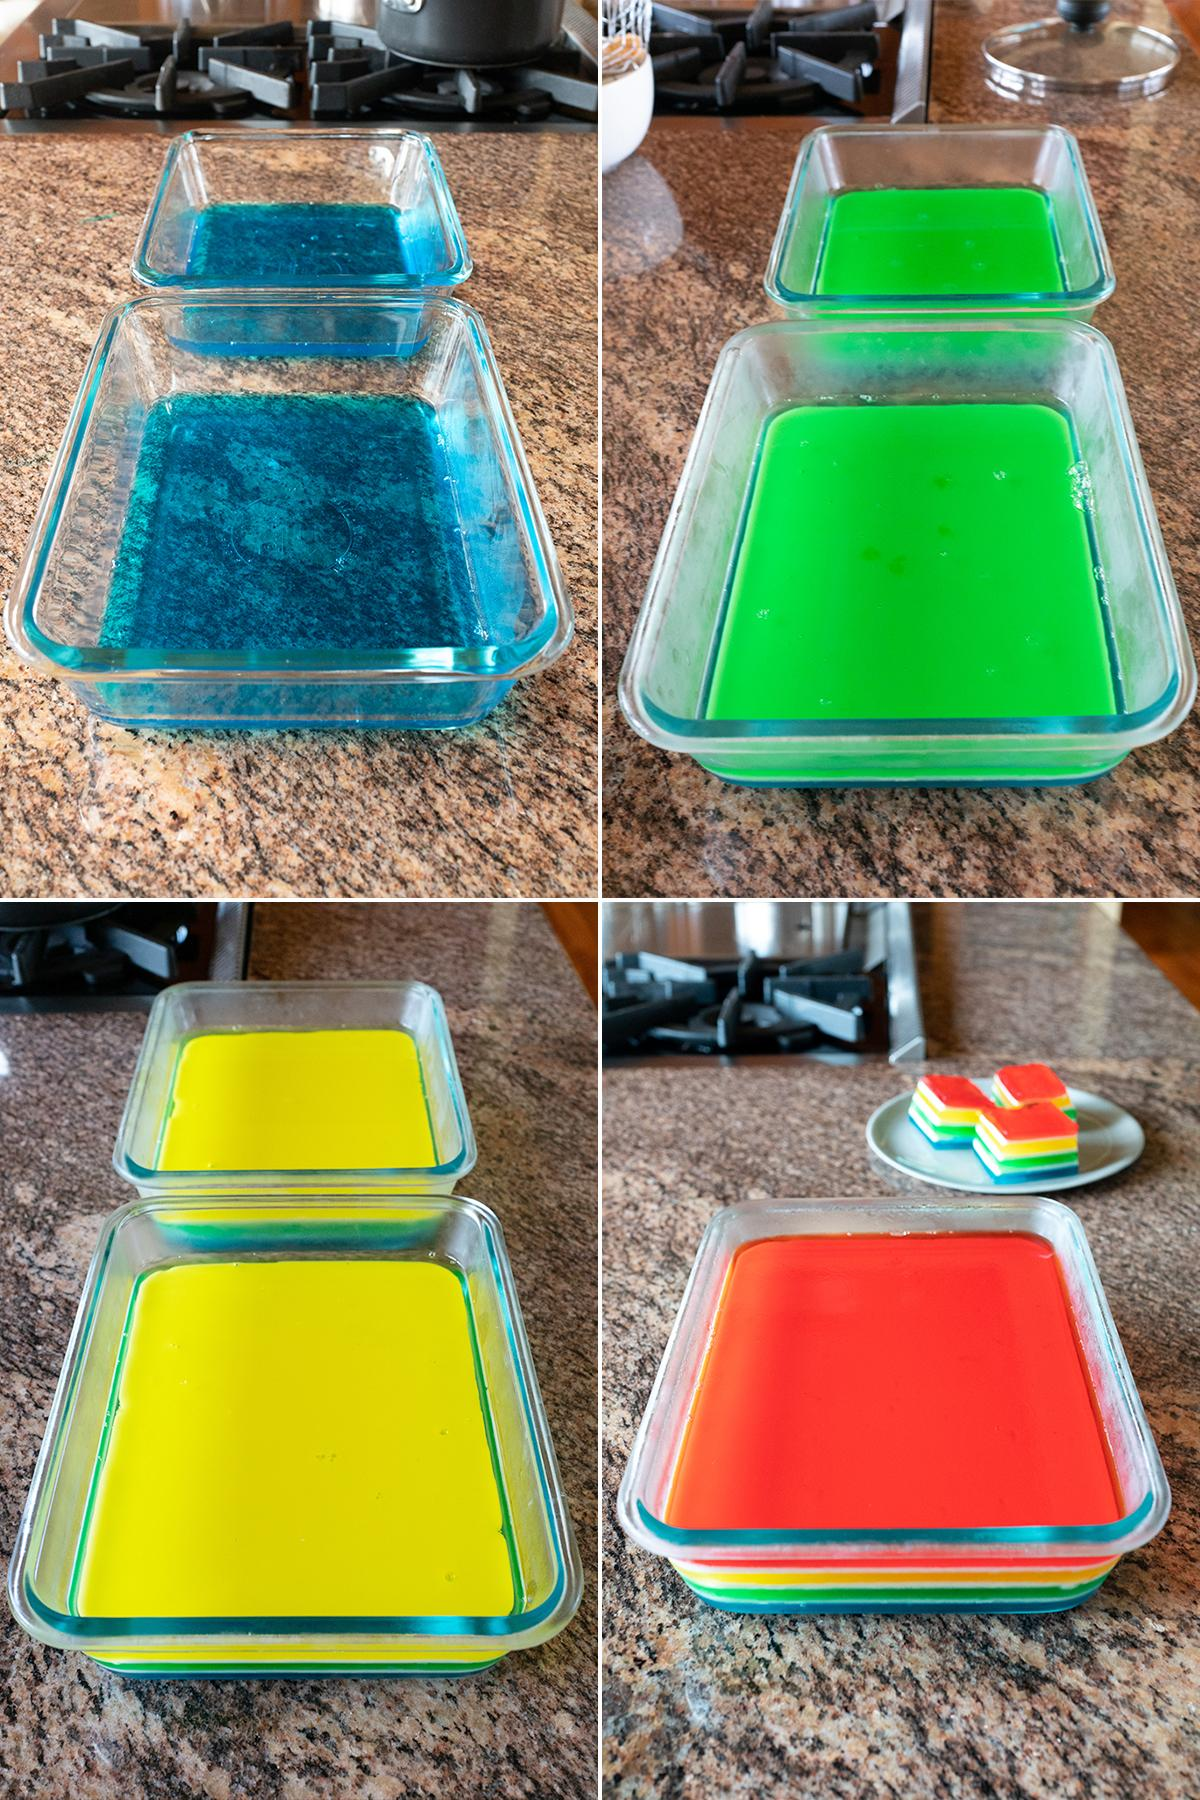 Four image collage of the different Rainbow Jello layers: blue, green, yellow, and red